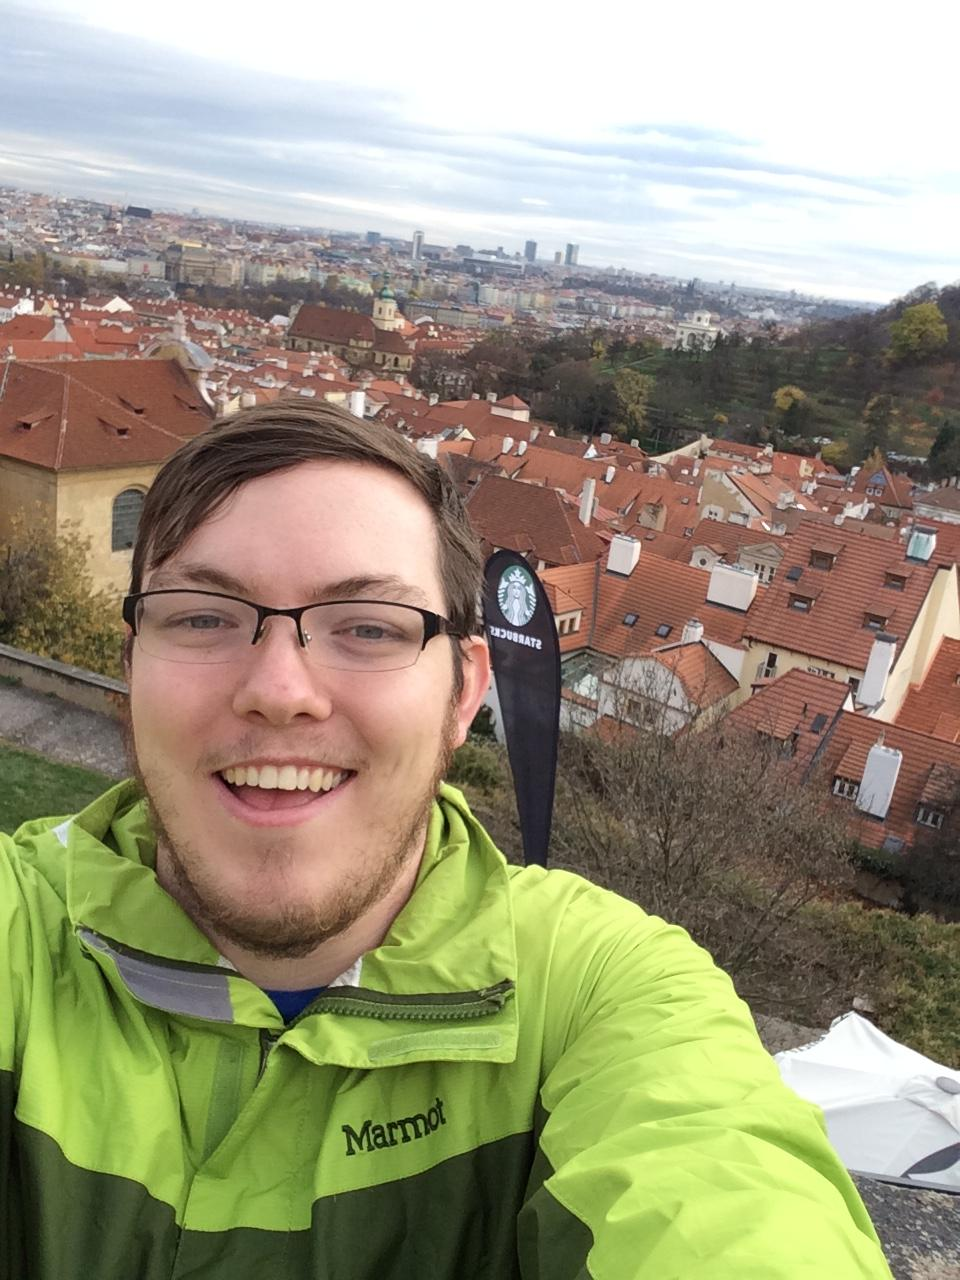 CAPAStudyAbroad_Dublin_Fall2015_From_Jeff_Vinton_-_Prague_Castle_with_city_of_Prague_in_background.jpg